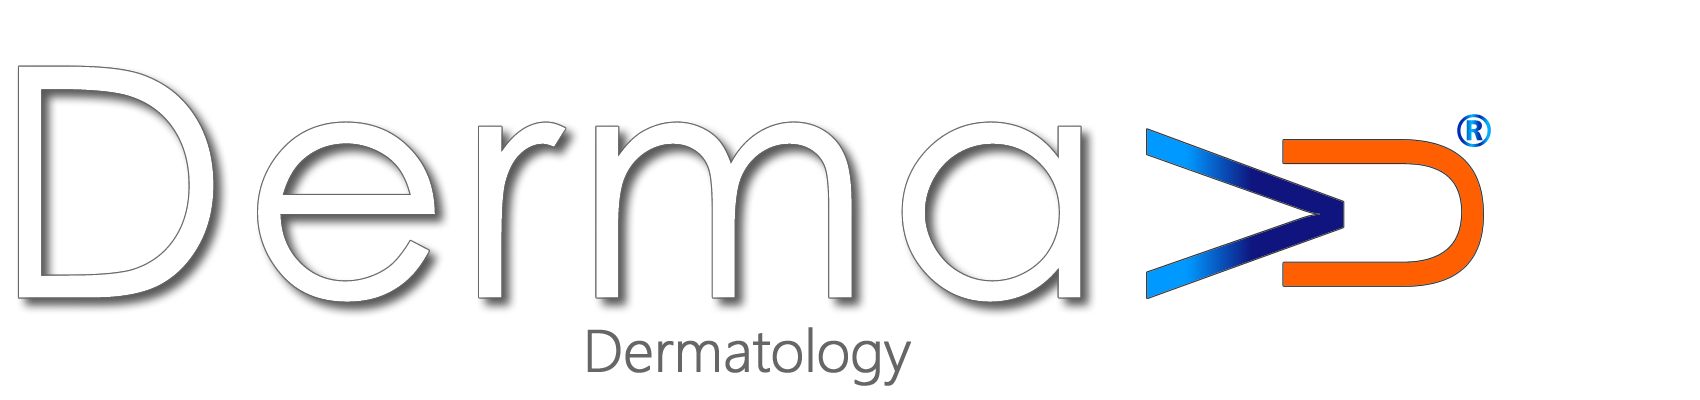 DermaVu-Official-NUOVOX-WEB-1